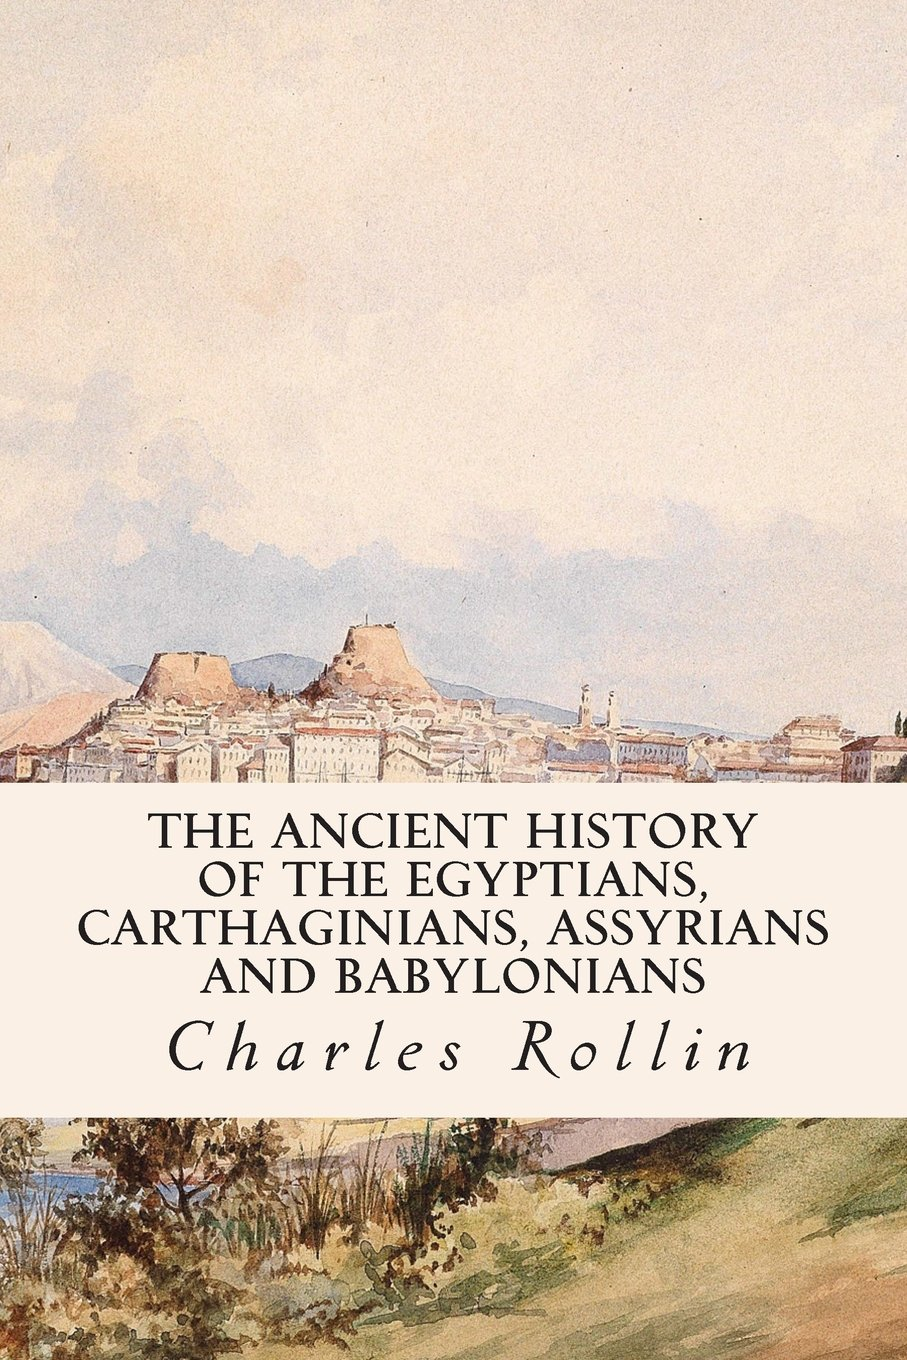 The Ancient History of the Egyptians, Carthaginians, Assyrians and Babylonians